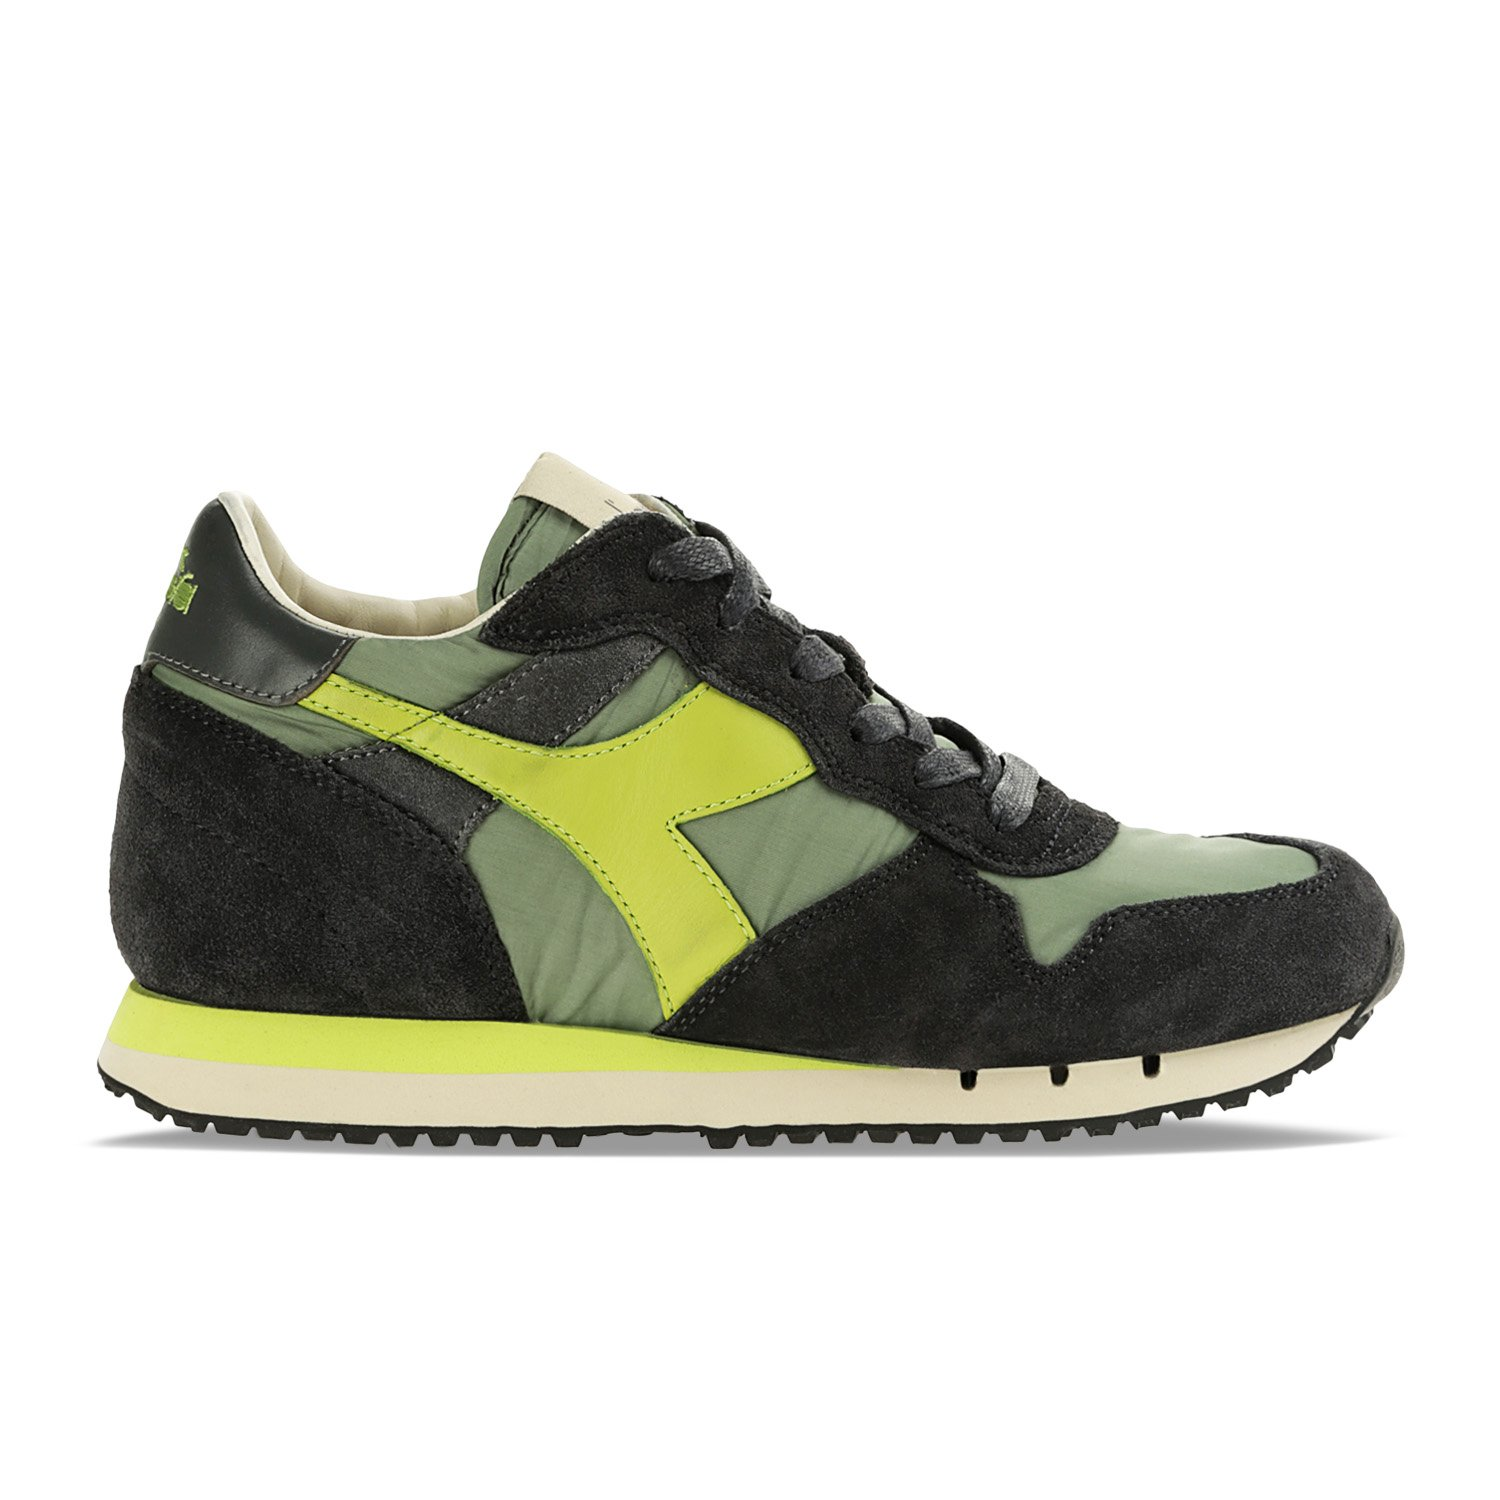 Diadora Heritage - Sneakers Trident W NYL para Mujer EU 39 - US 6.5 - UK 6 (cm 24.5)|70204 - Verde Frost Loden